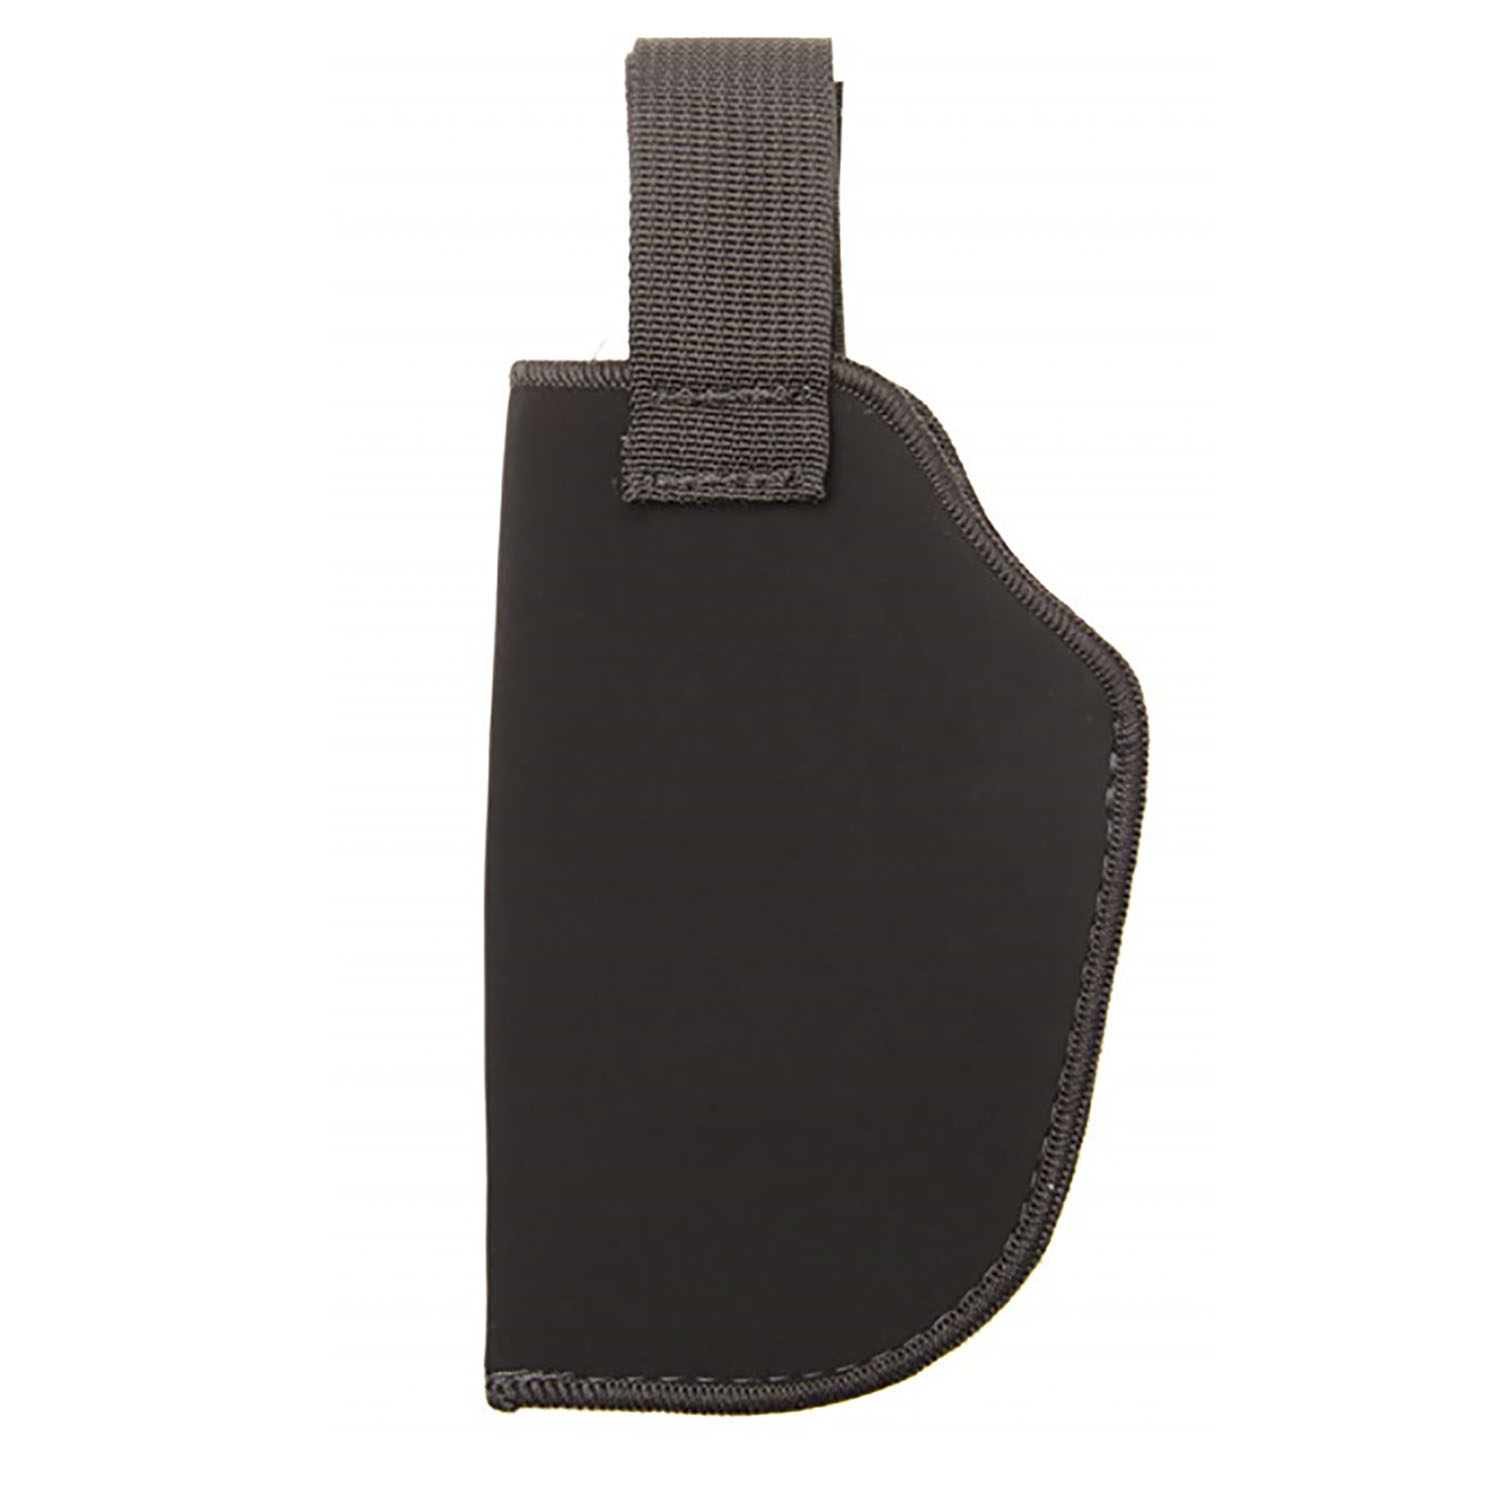 Blackhawk Black Inside-the-Pants Holster with Retention Stra